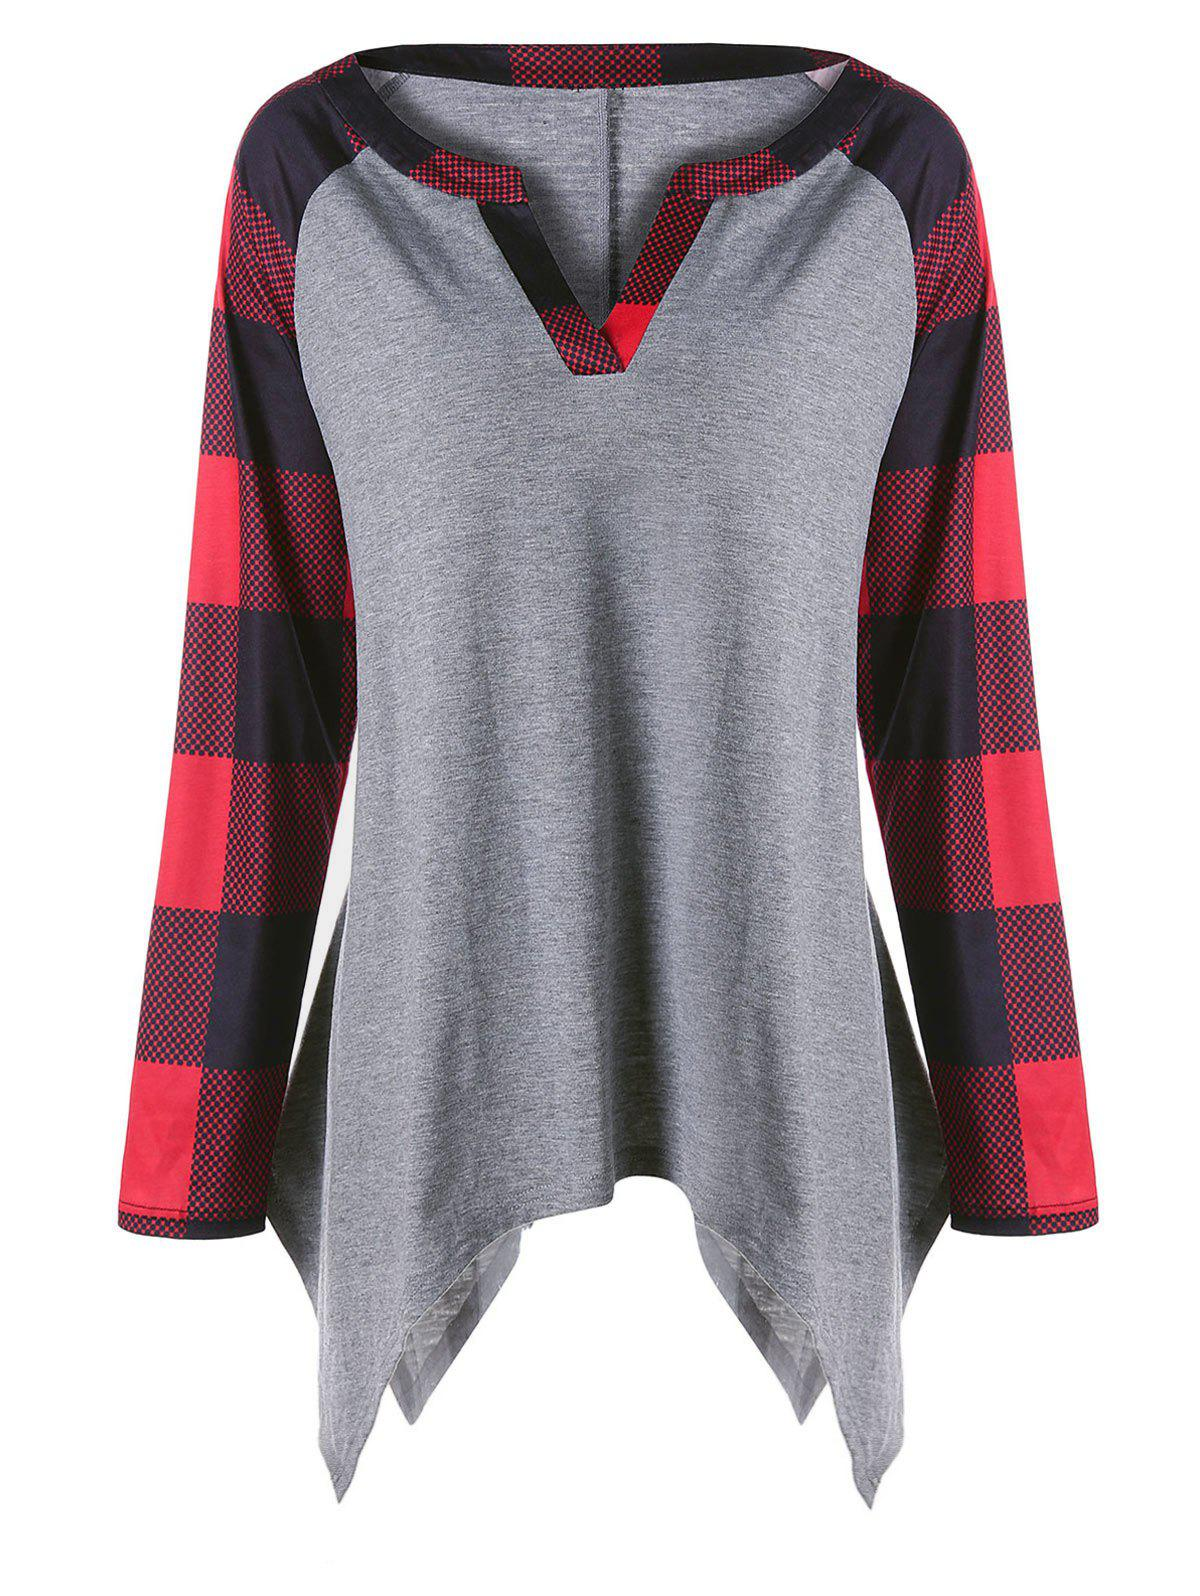 Plus Size Raglan Sleeves Plaid Panel Asymmetric TopWOMEN<br><br>Size: 5XL; Color: GRAY; Material: Polyester,Spandex; Shirt Length: Regular; Sleeve Length: Full; Collar: V-Neck; Style: Casual; Season: Fall,Spring; Sleeve Type: Raglan Sleeve; Pattern Type: Plaid; Weight: 0.3000kg; Package Contents: 1 x T-shirt;